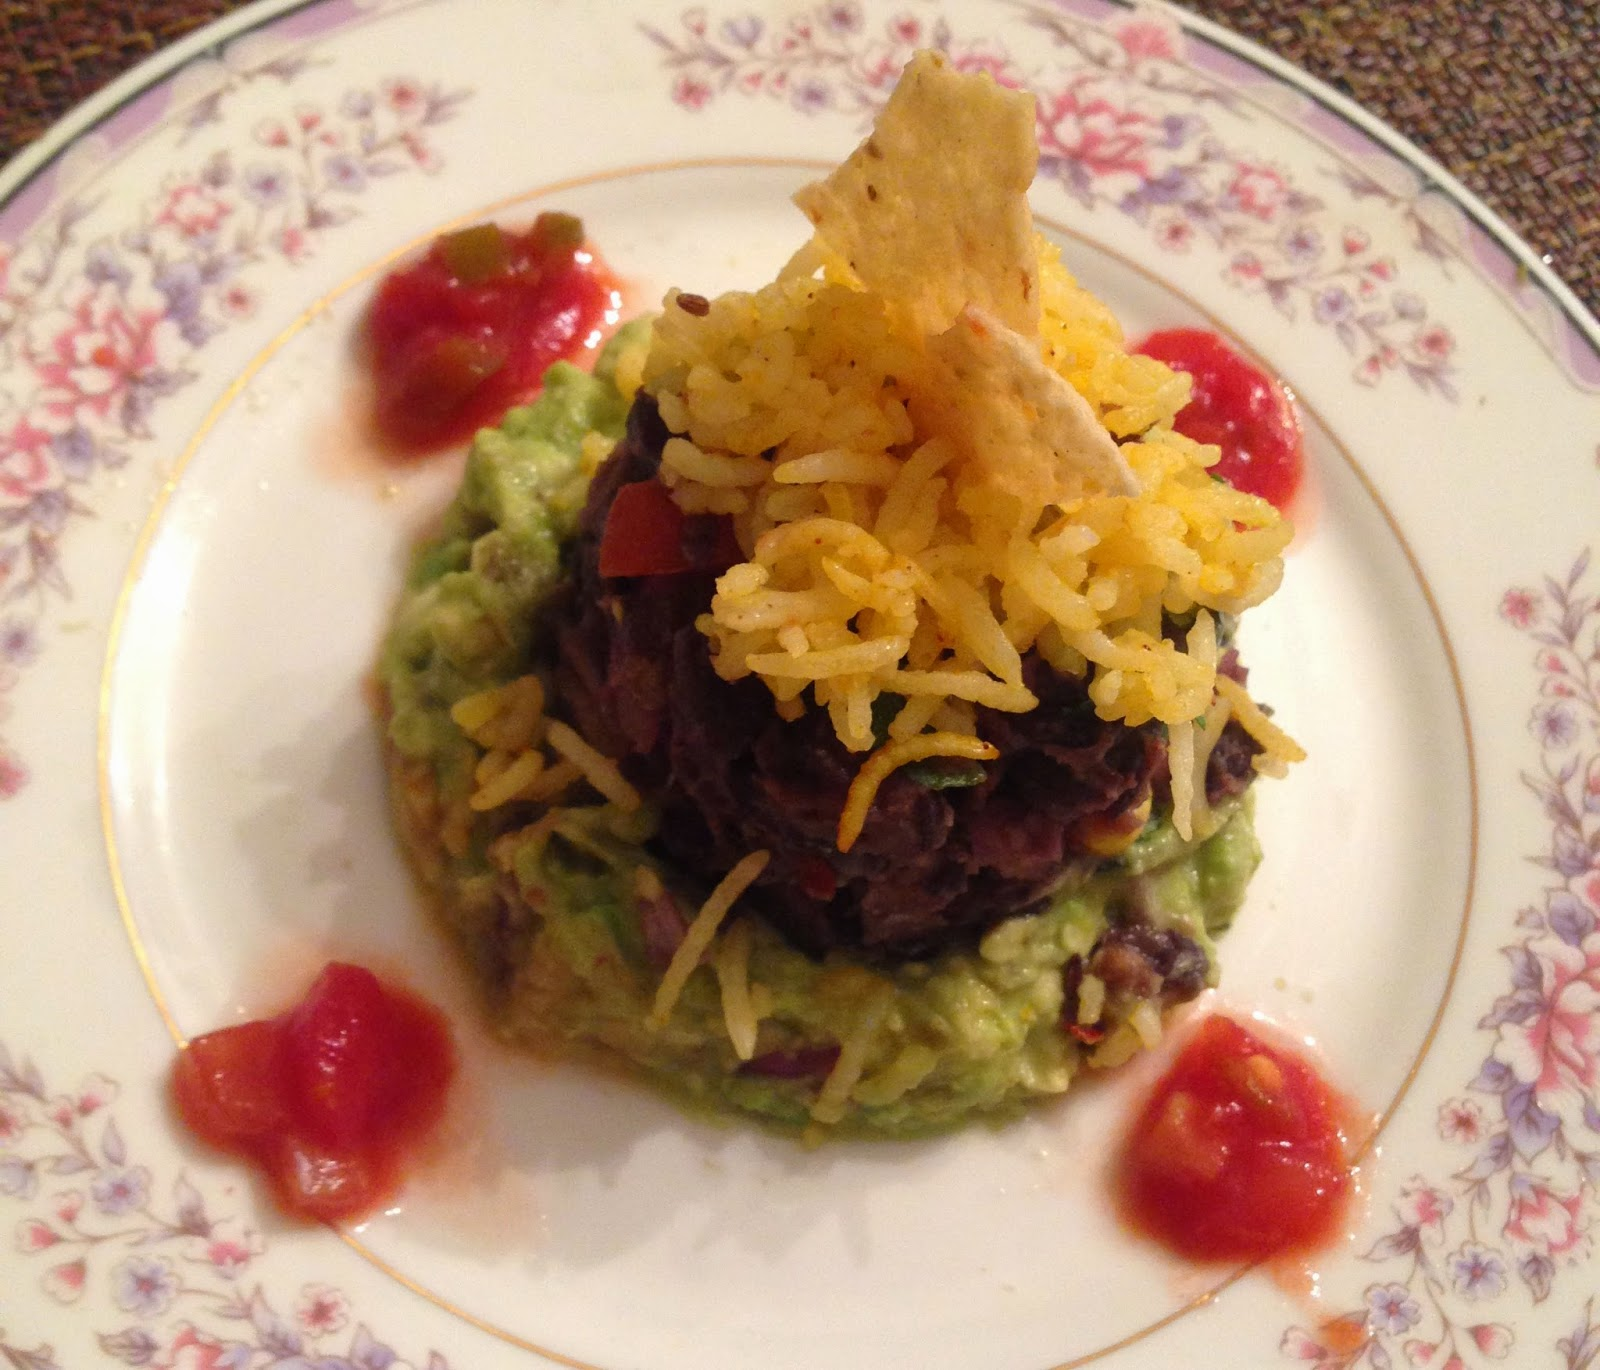 Spicy Black Bean & Salsa Tartare with Guacamole